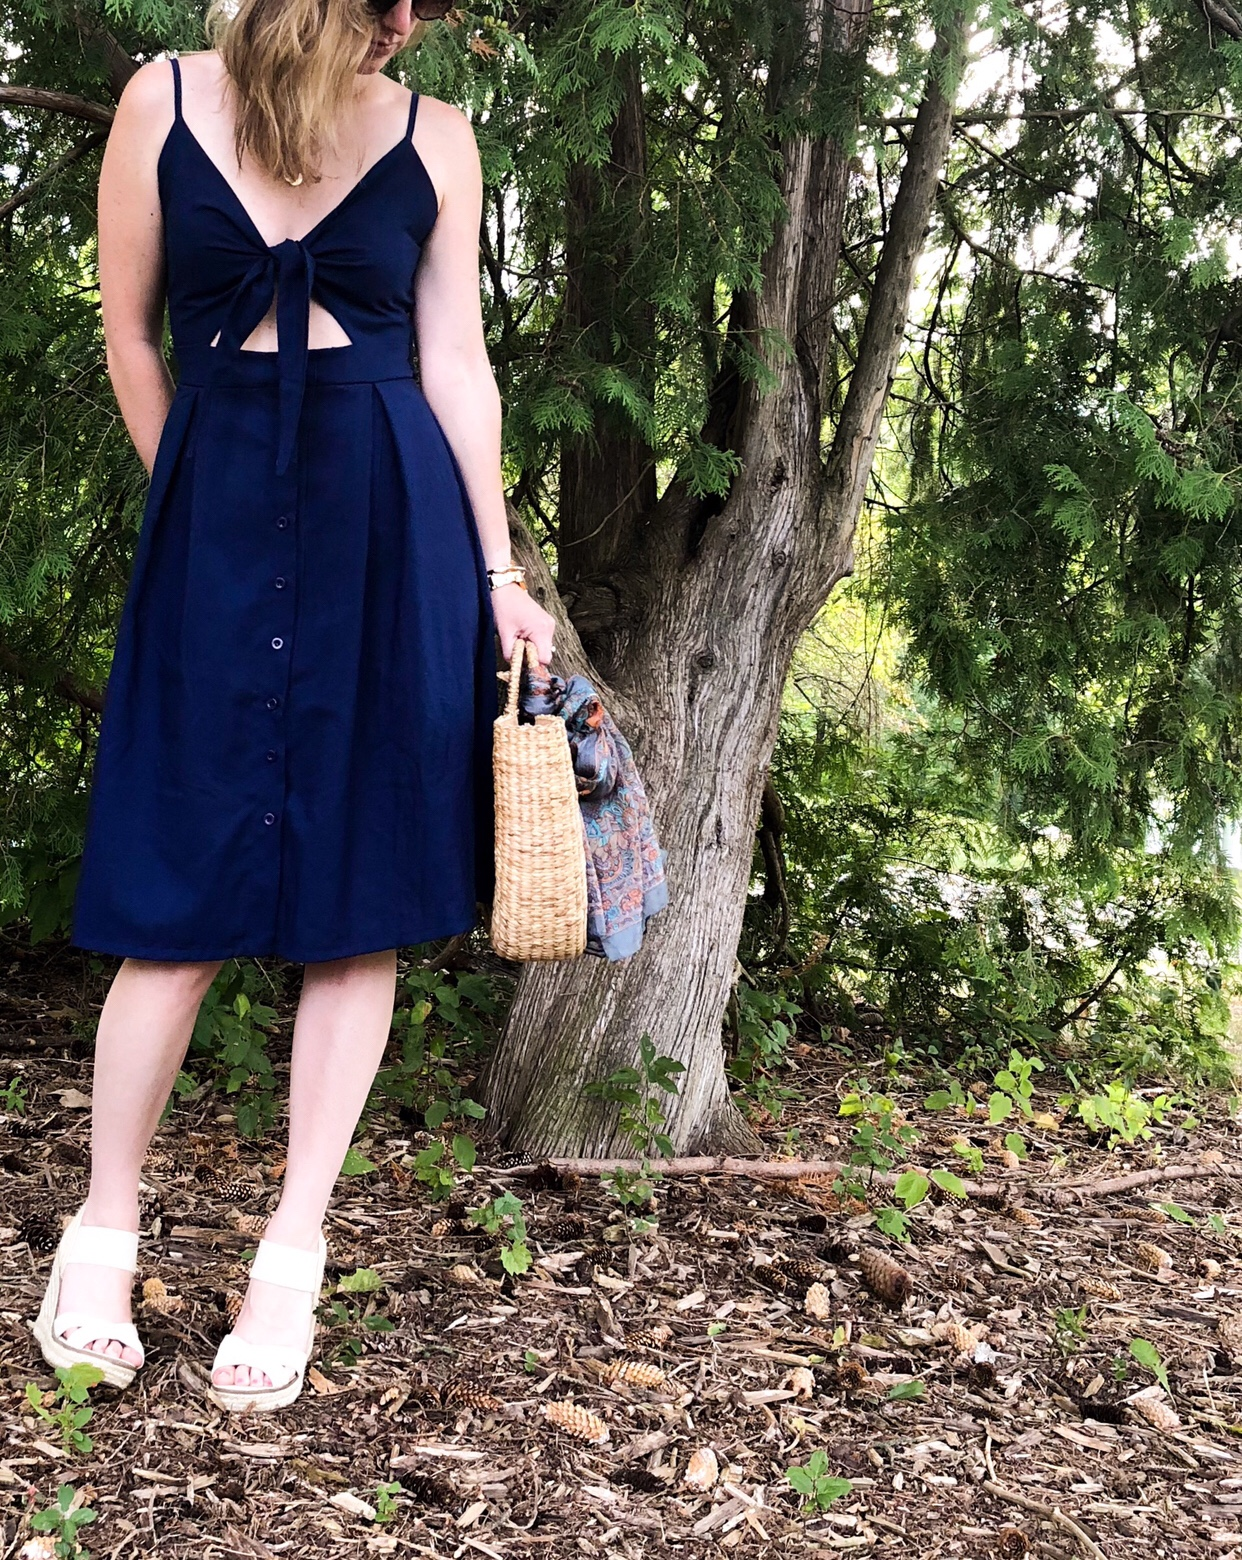 Navy day dress for summer #dress #summerstyle #afforablefashion #strawhandbag #navydress #outfitidea